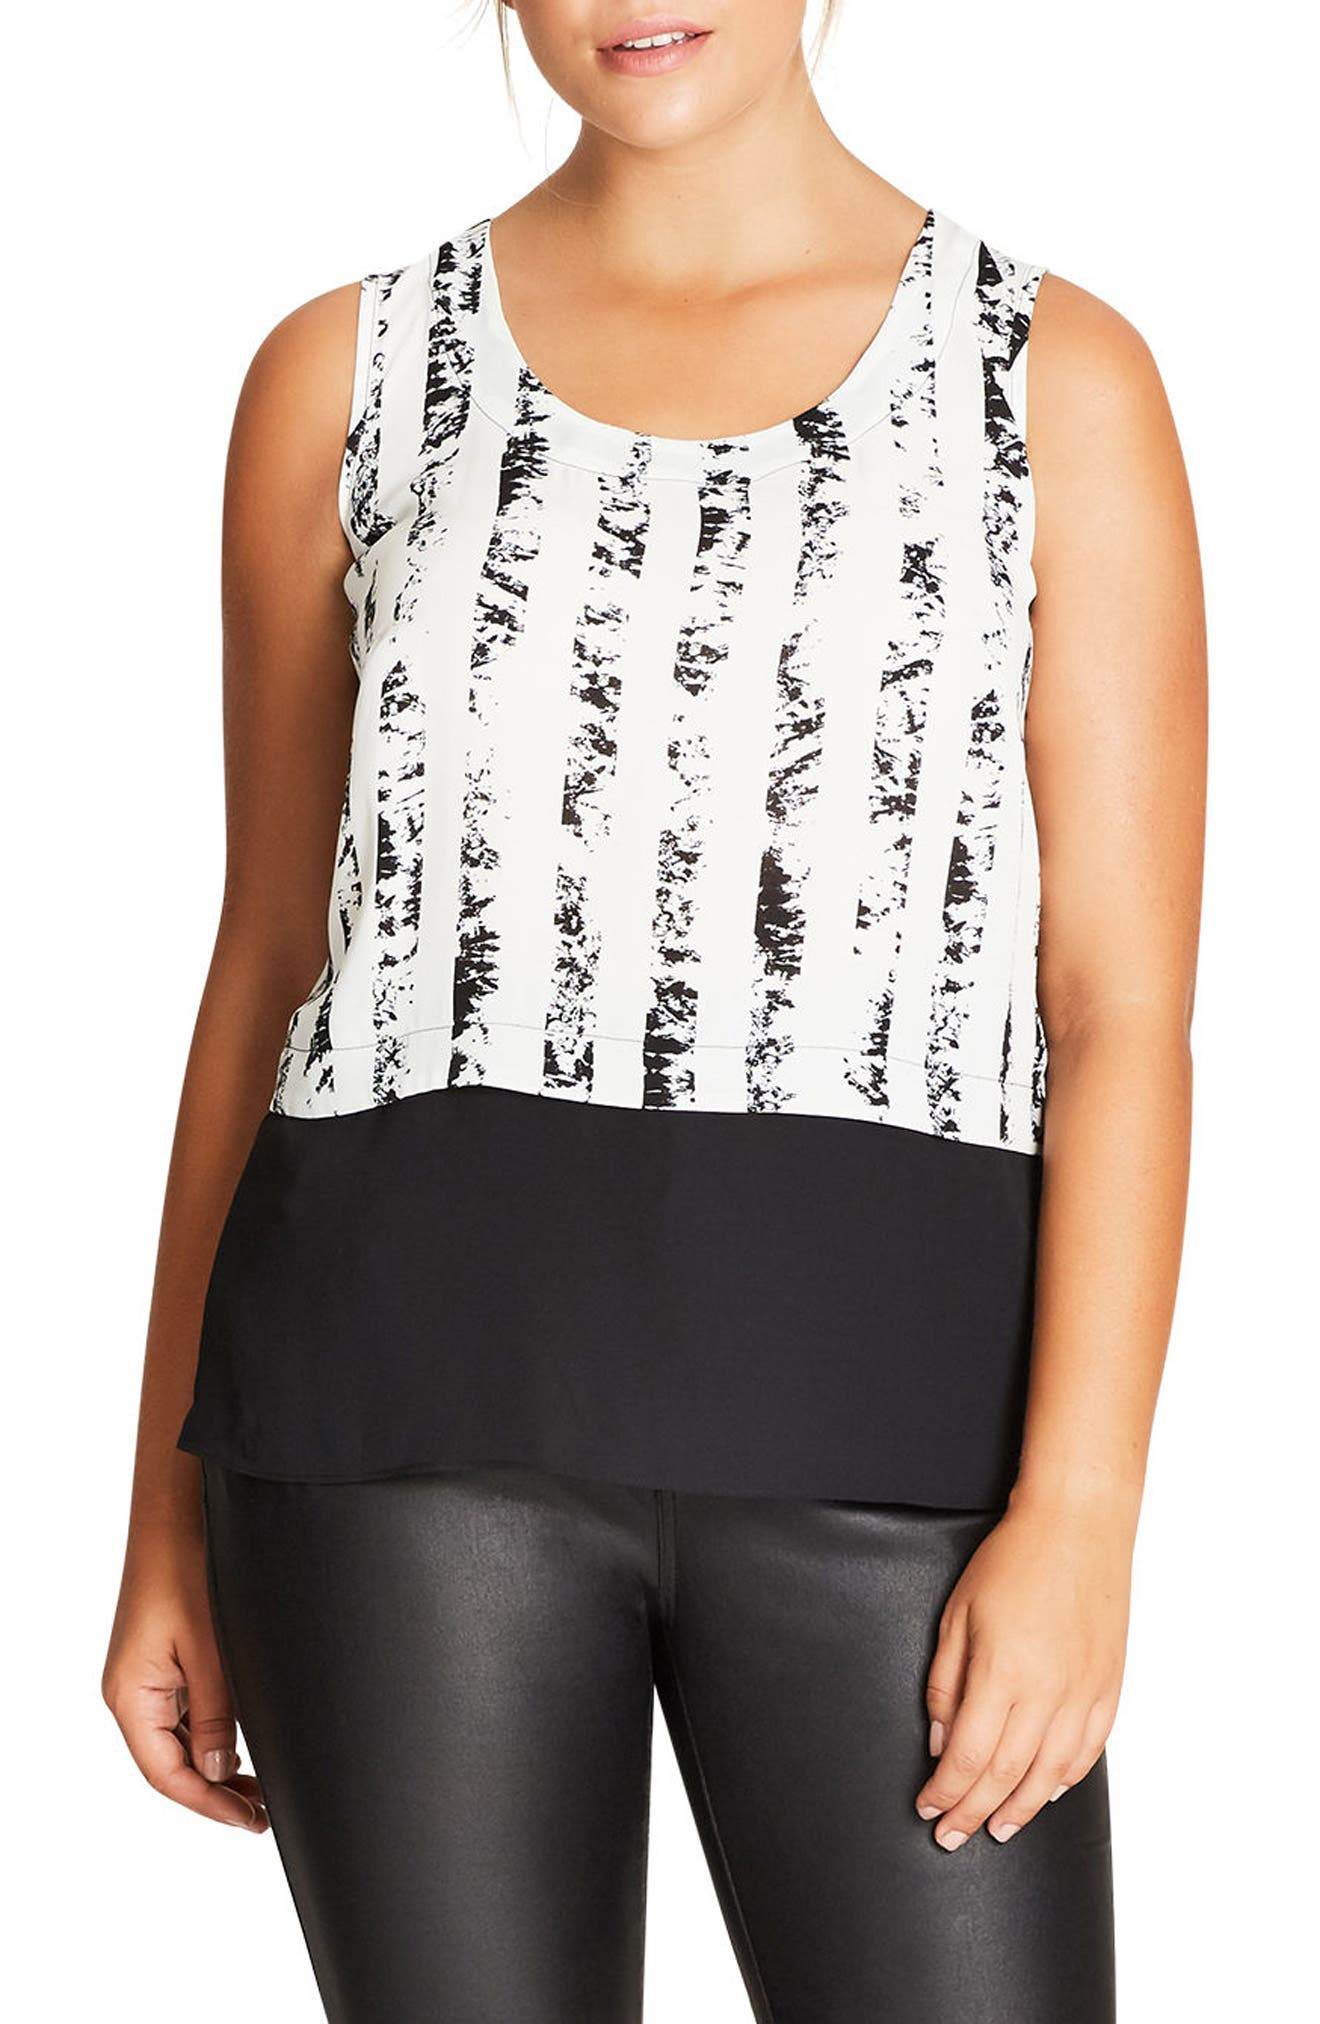 Alternate Image 1 Selected - City Chic Print Overlay Top (Plus Size)